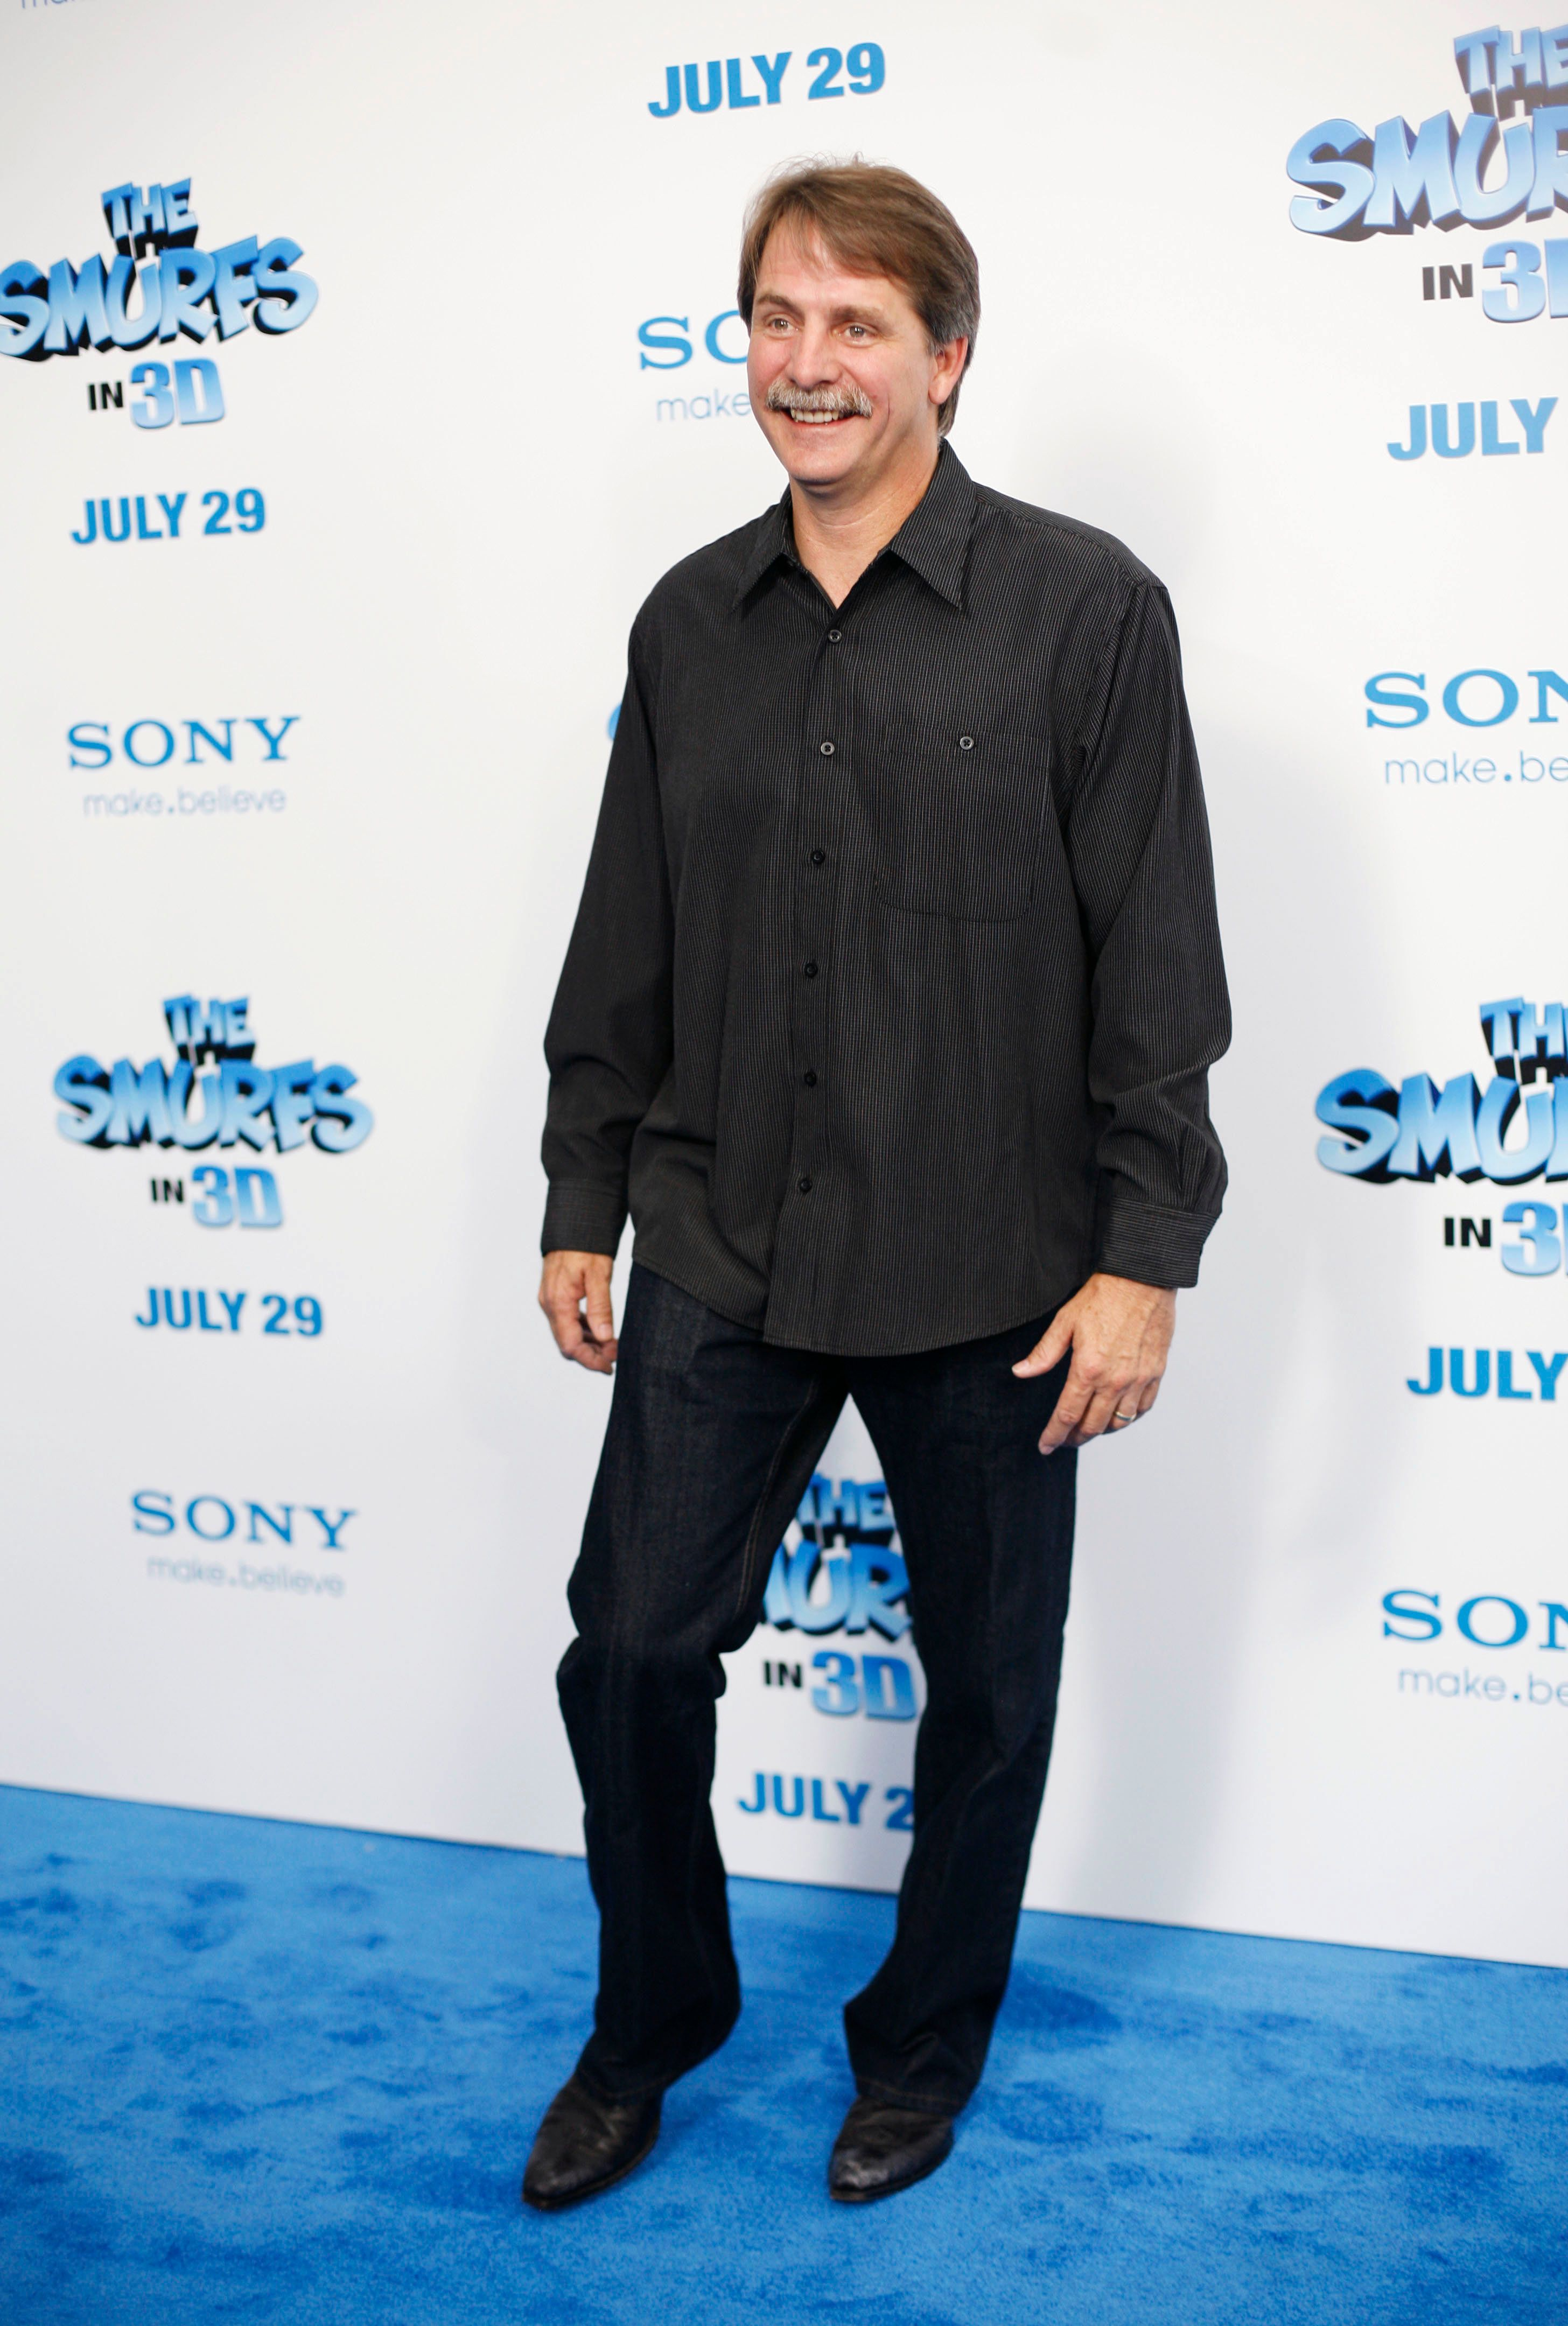 """Comedian Jeff Foxworthy attends the premiere of """"The Smurfs"""" at the Ziegfeld Theater in New York July 24, 2011.  REUTERS/Allison Joyce (UNITED STATES - Tags: ENTERTAINMENT)"""